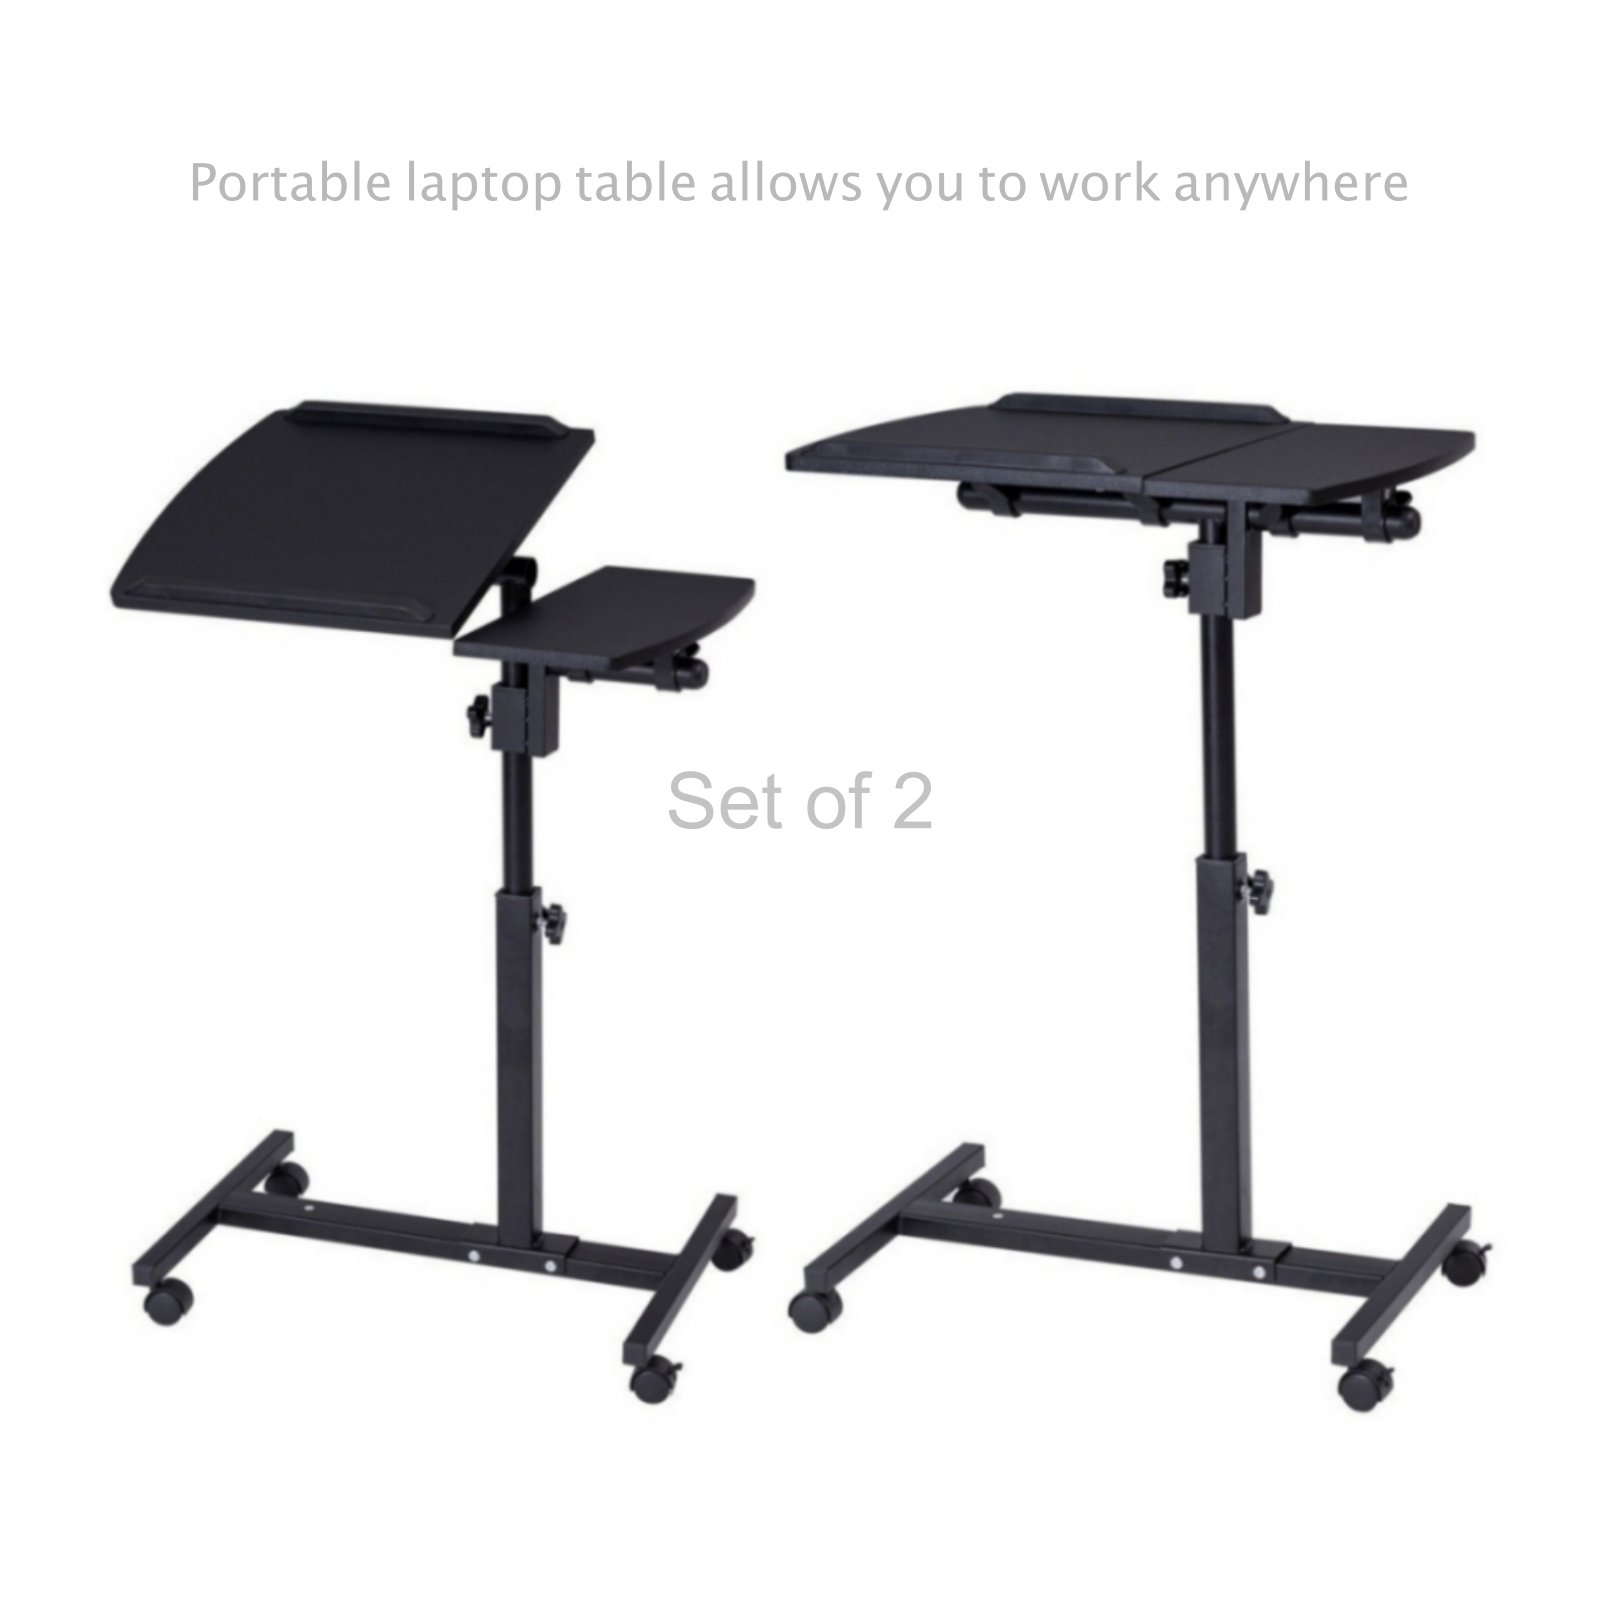 Laptop Notebook Smartphone Table Stand Portable Rolling Cart Height Adjustable Living Room Tray School Home Office Furniture - Set of 2 Black #1822(2)